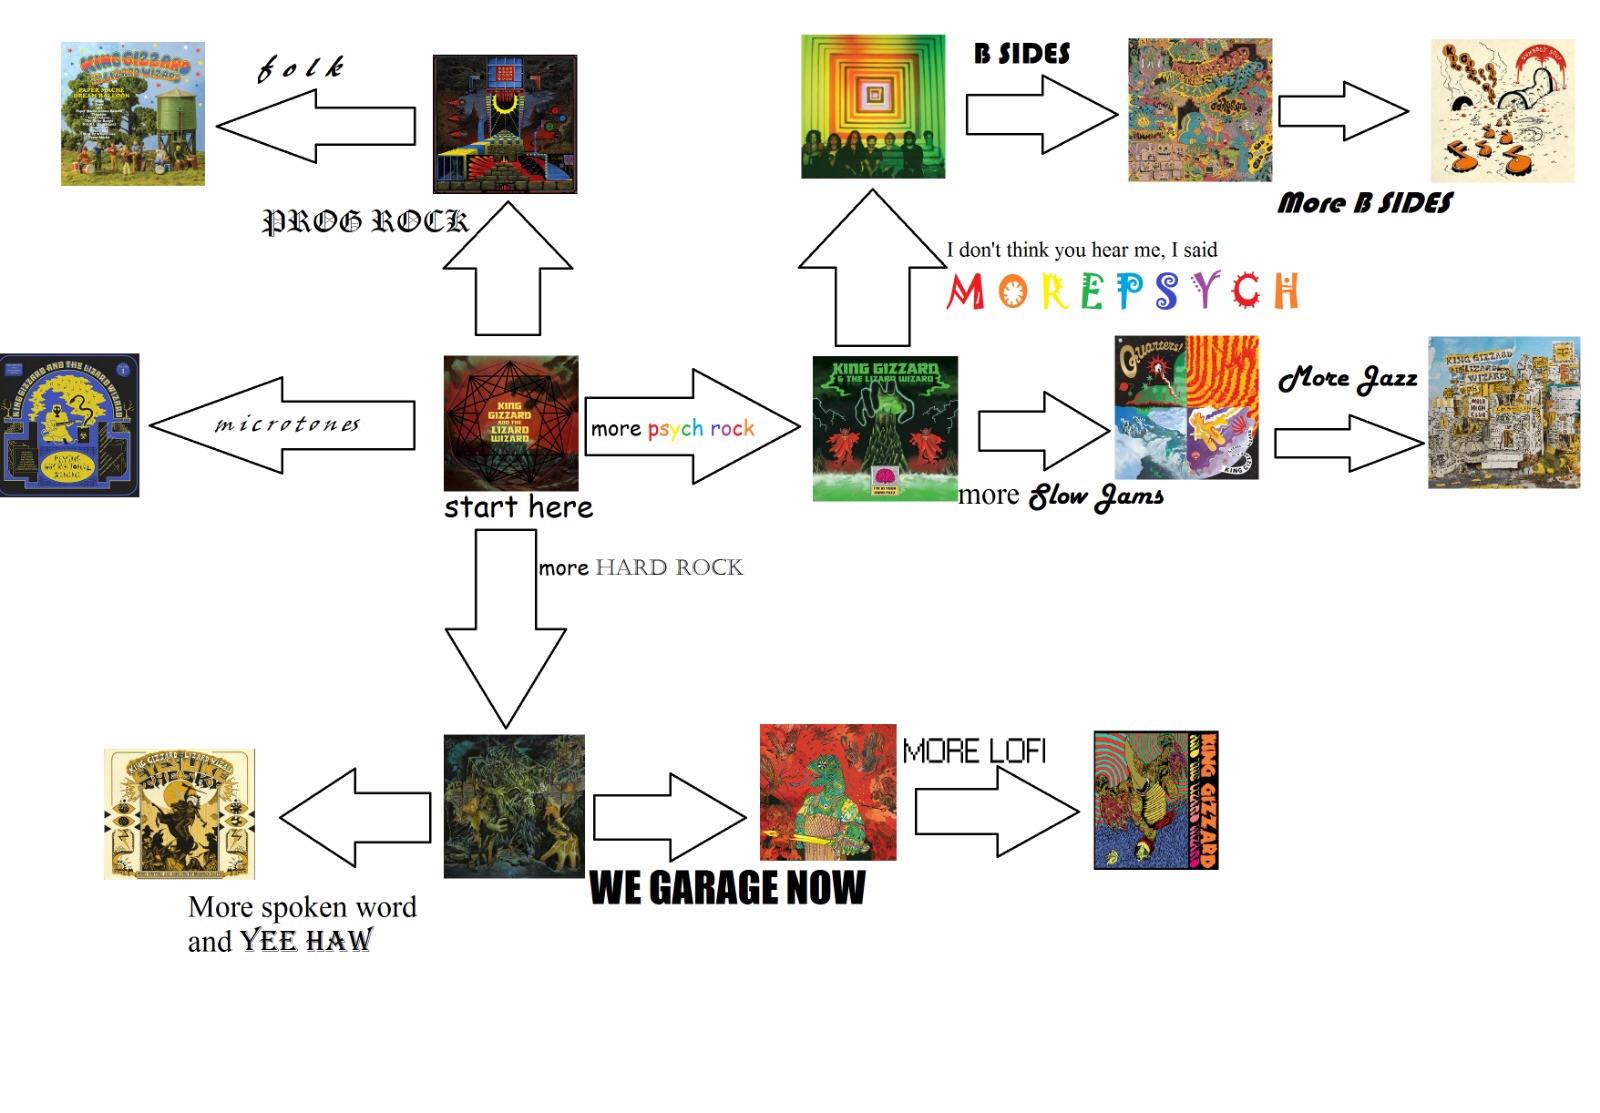 hight resolution of flowchart i made for a friend wanting to get into the band